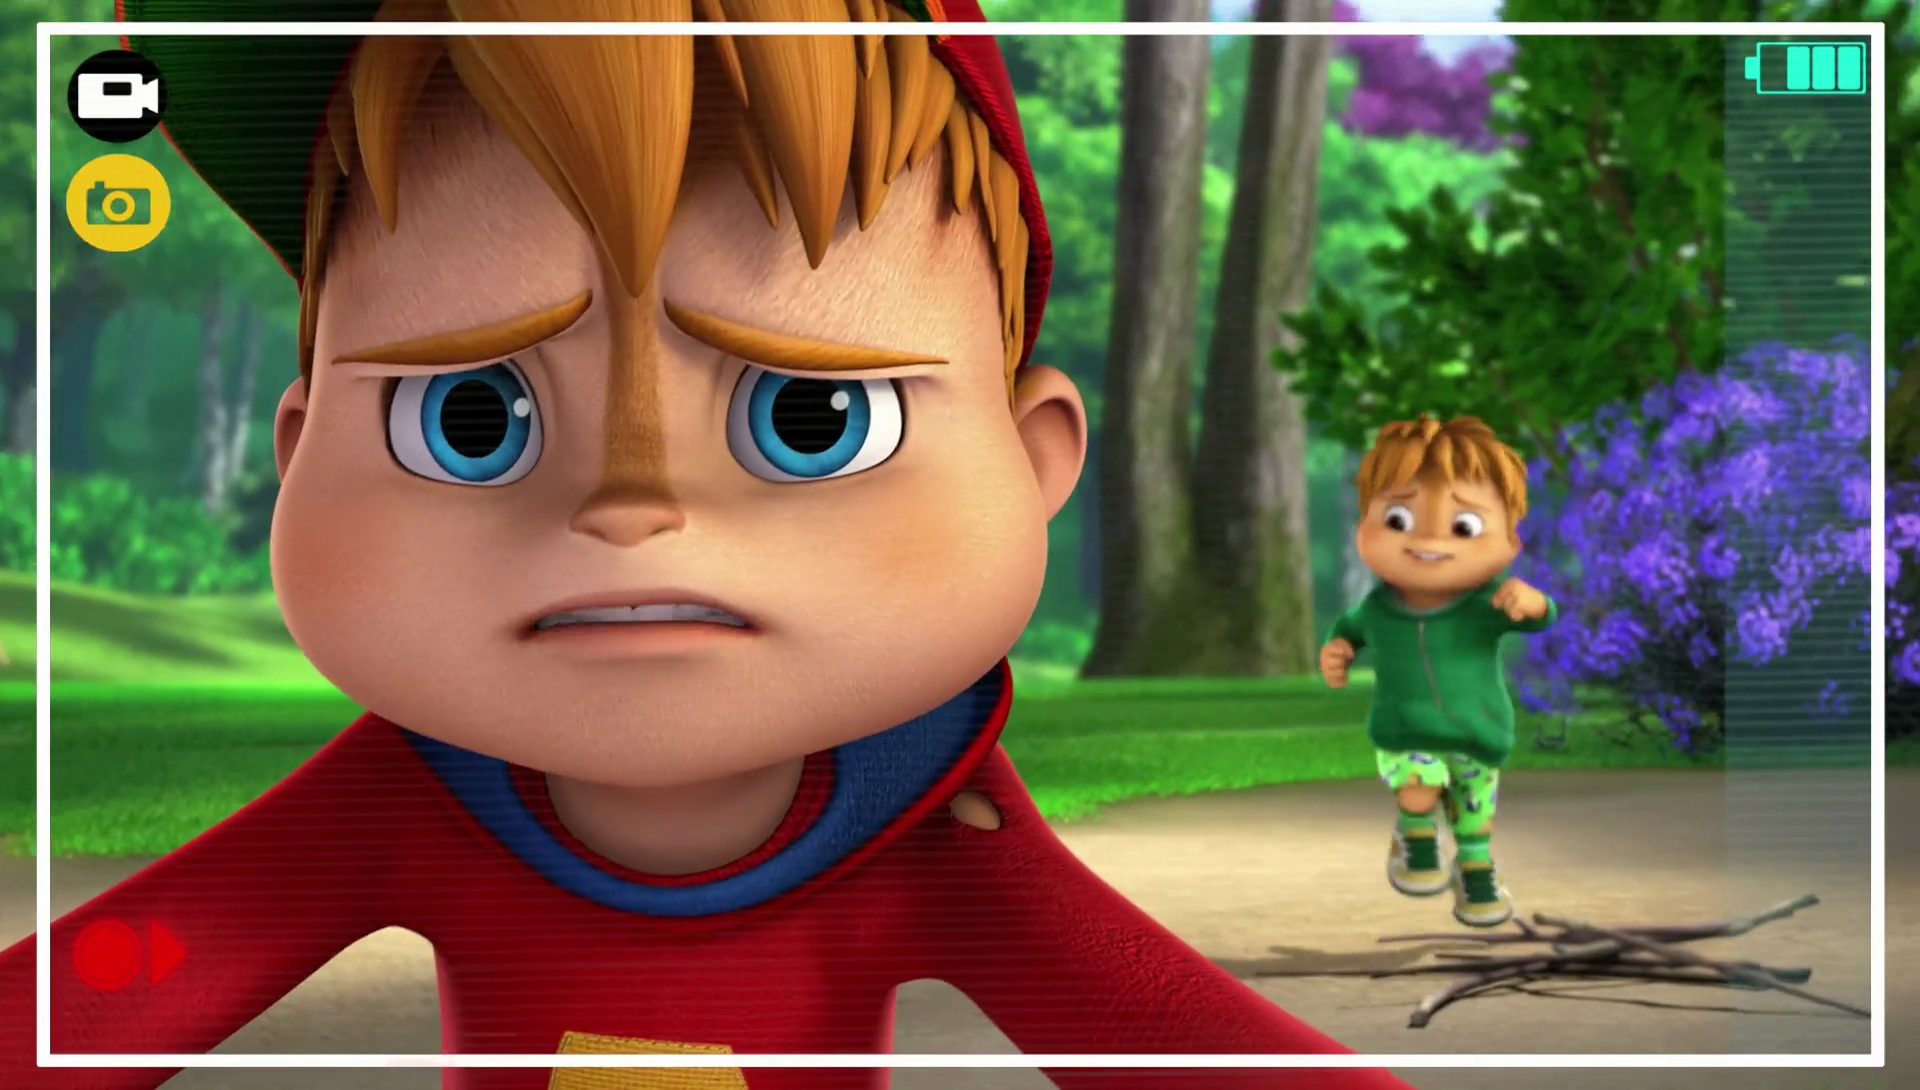 Alvinnn And The Chipmunks Brittany And Alvin the fugitives | alvin and the chipmunks wiki | fandom